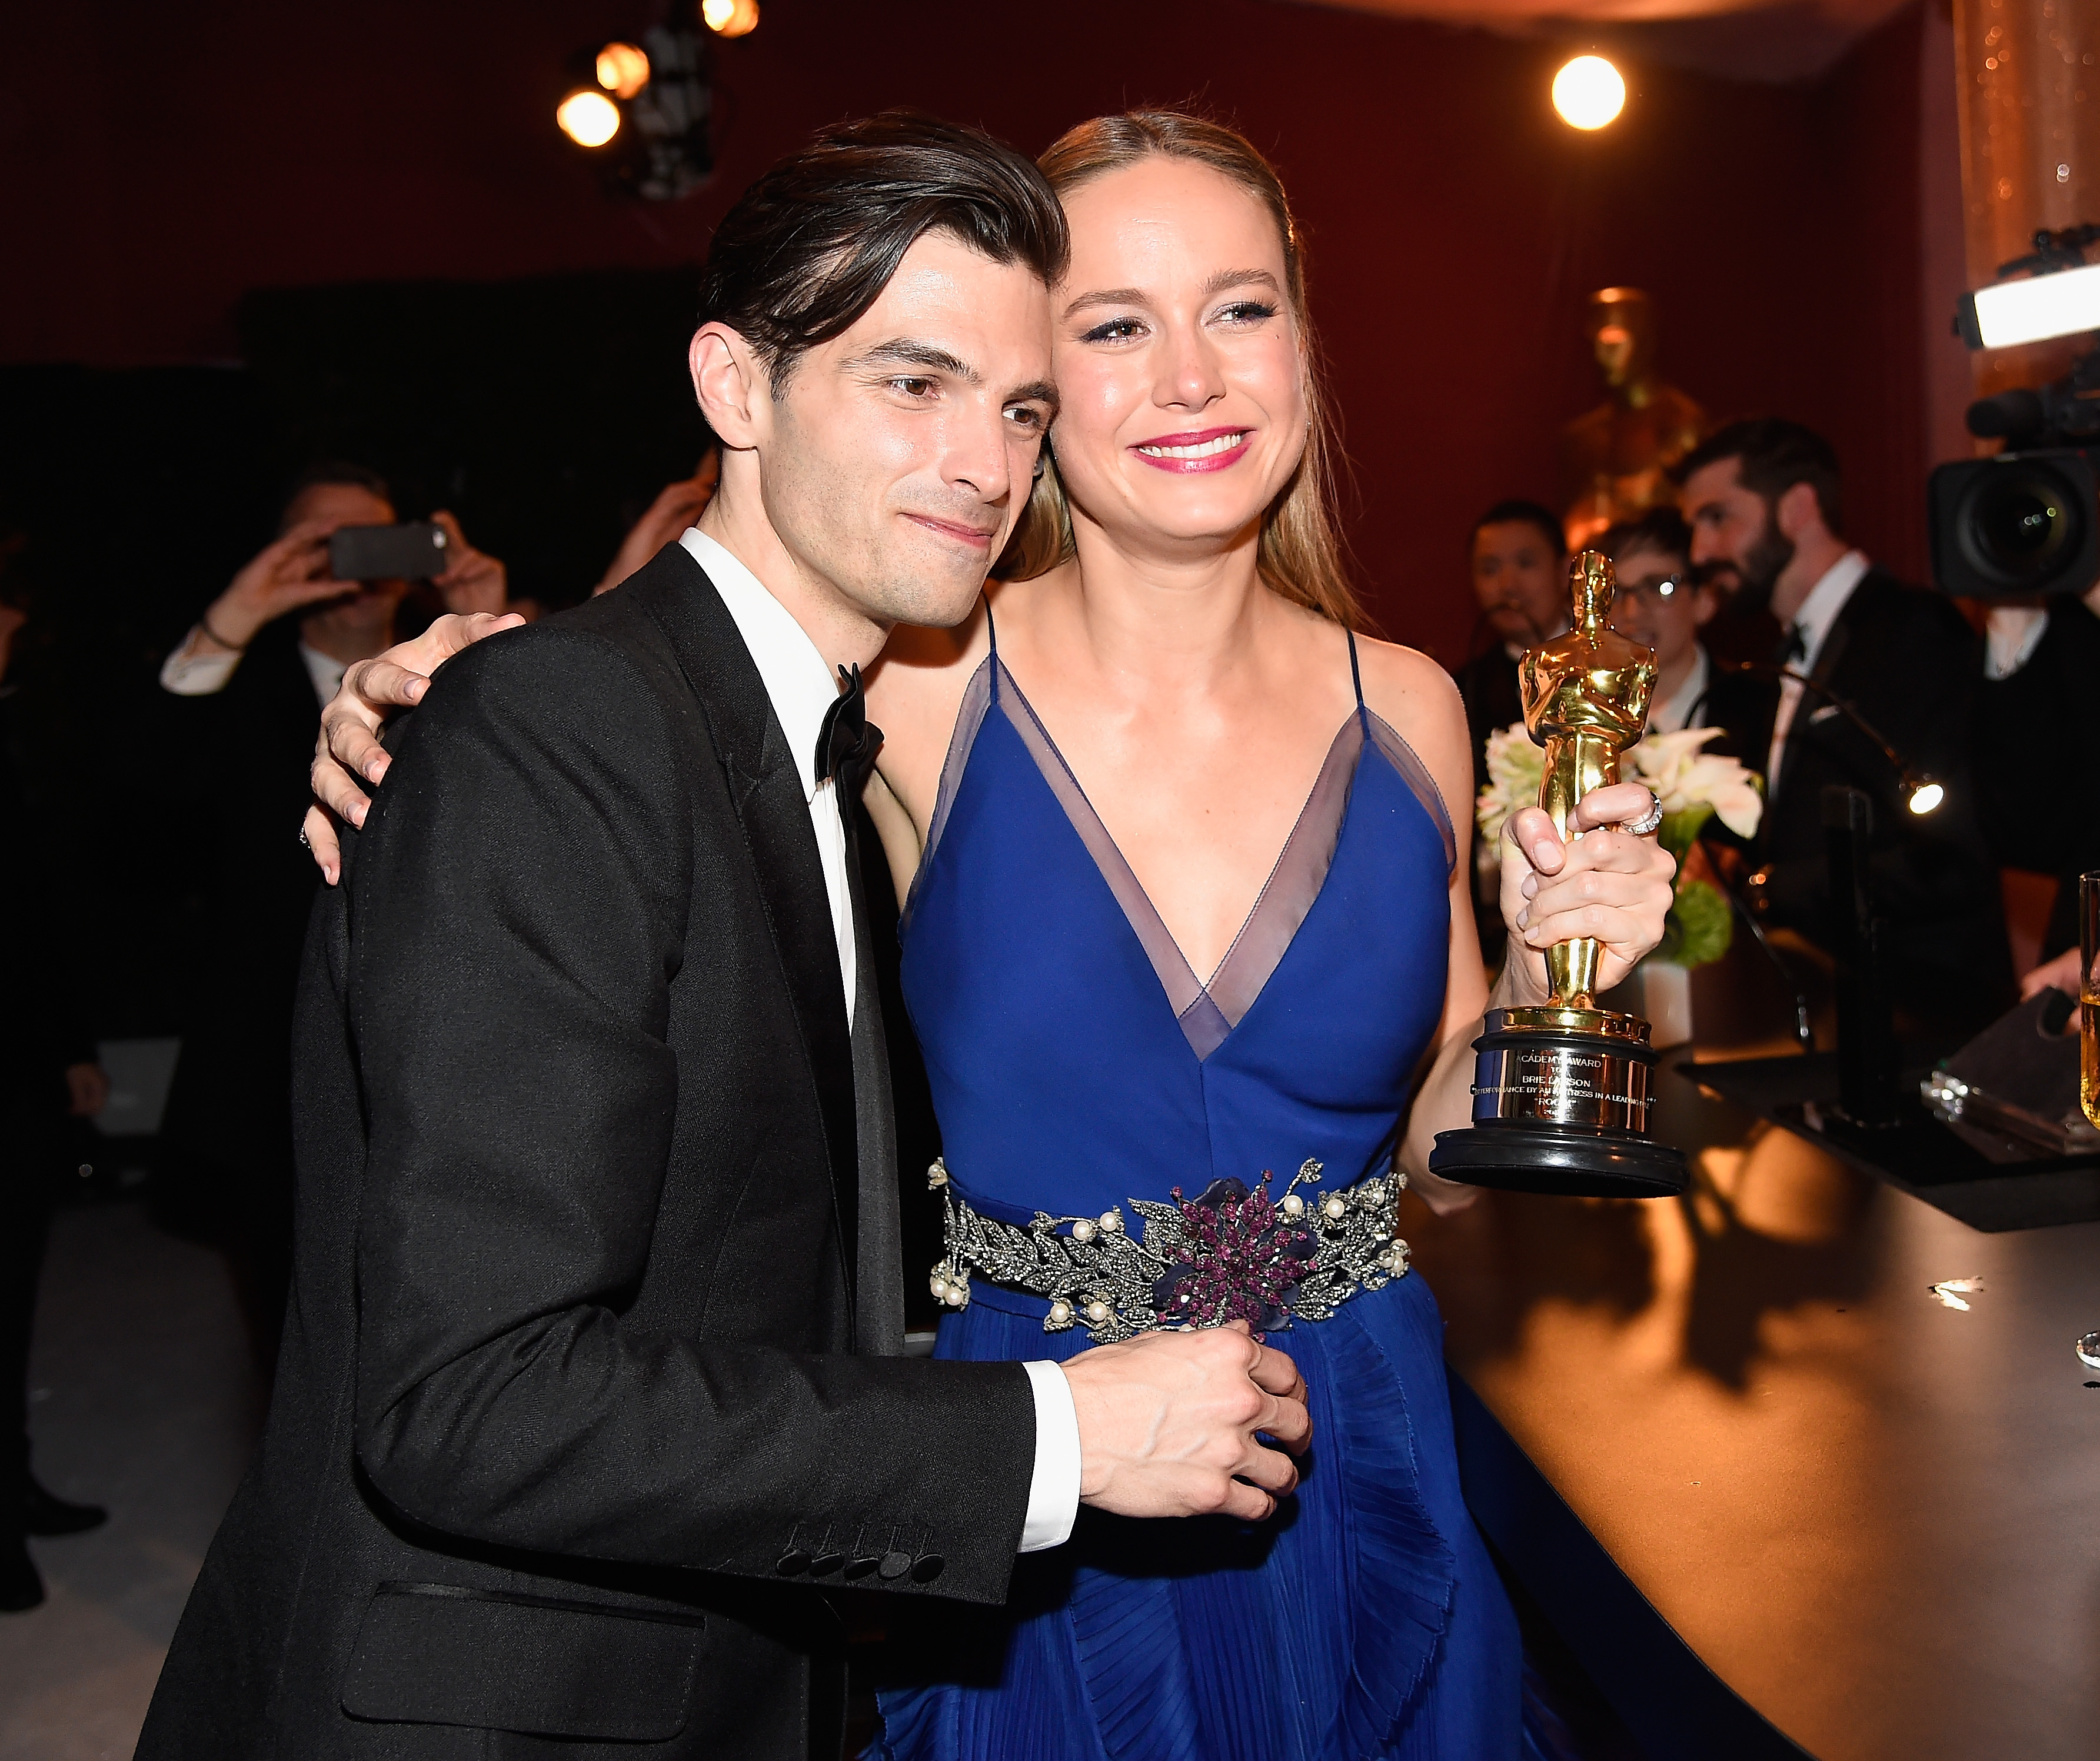 Brie Larson and Alex Greenwald at this year's Oscars.